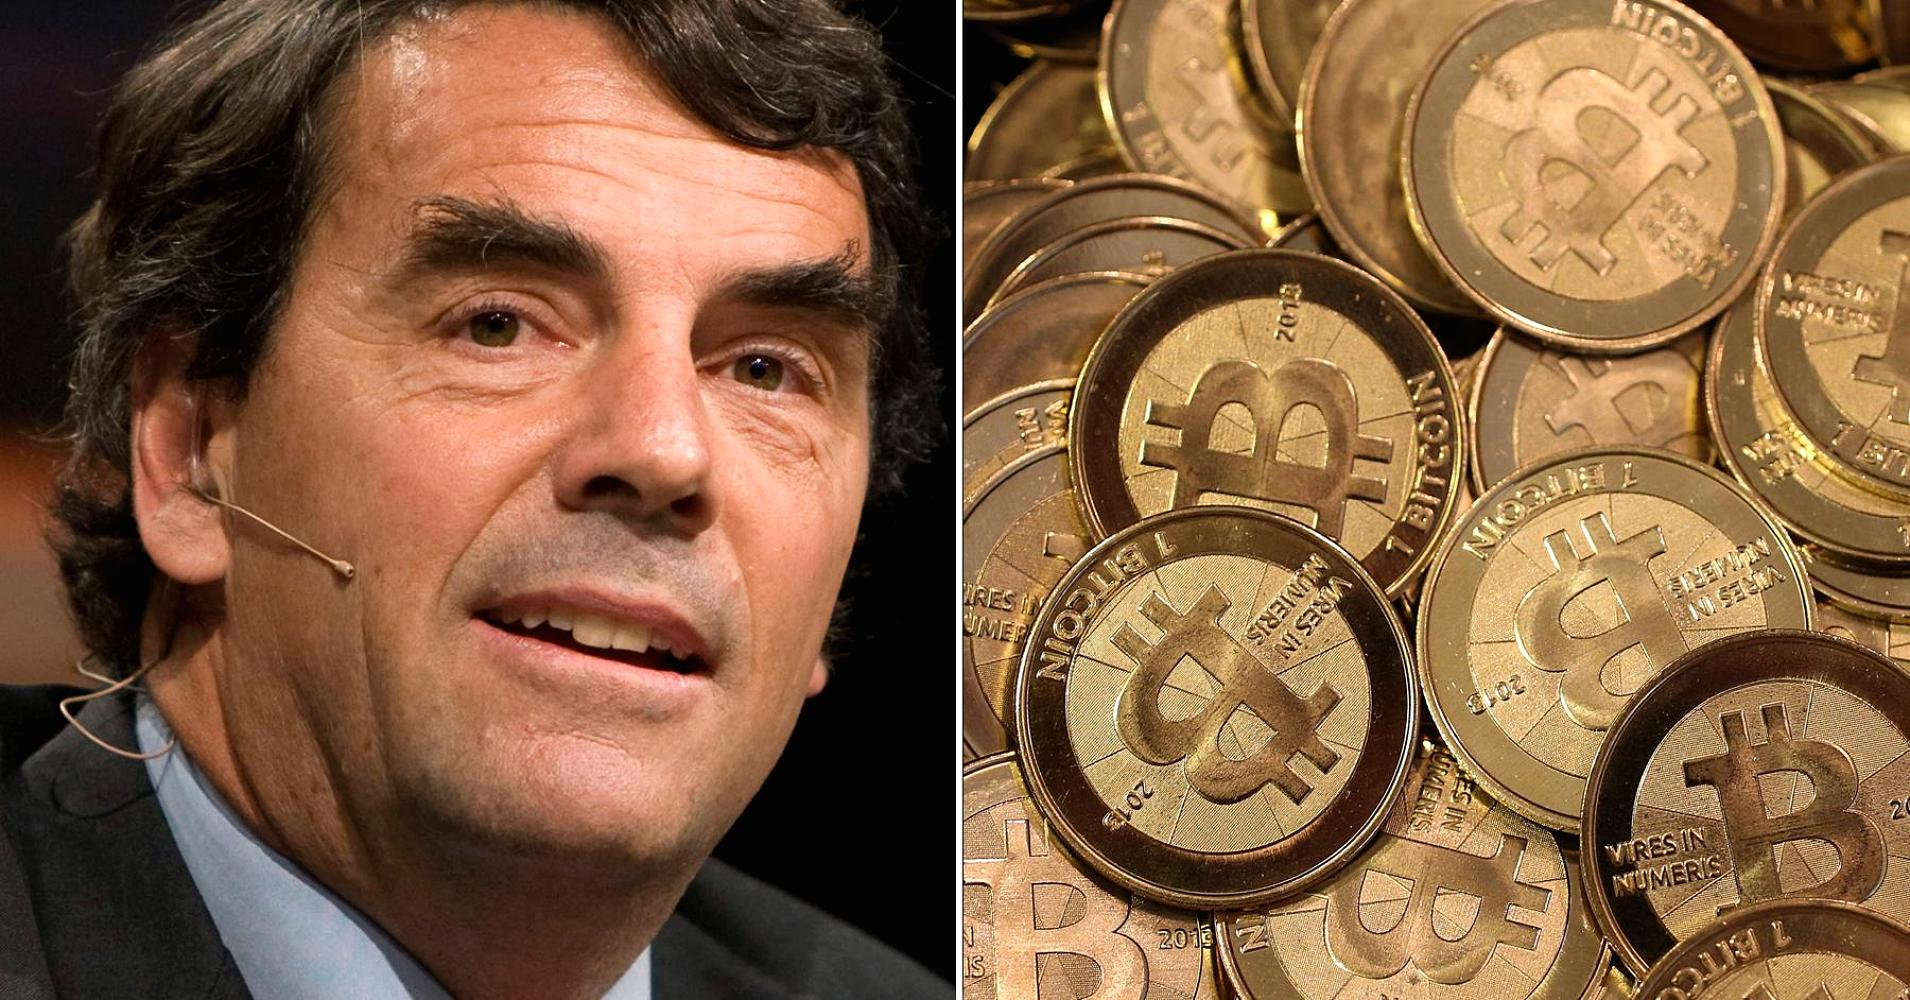 Billionaire bitcoin enthusiast Tim Draper is backing a new cryptocurrency for the first time - CNBC